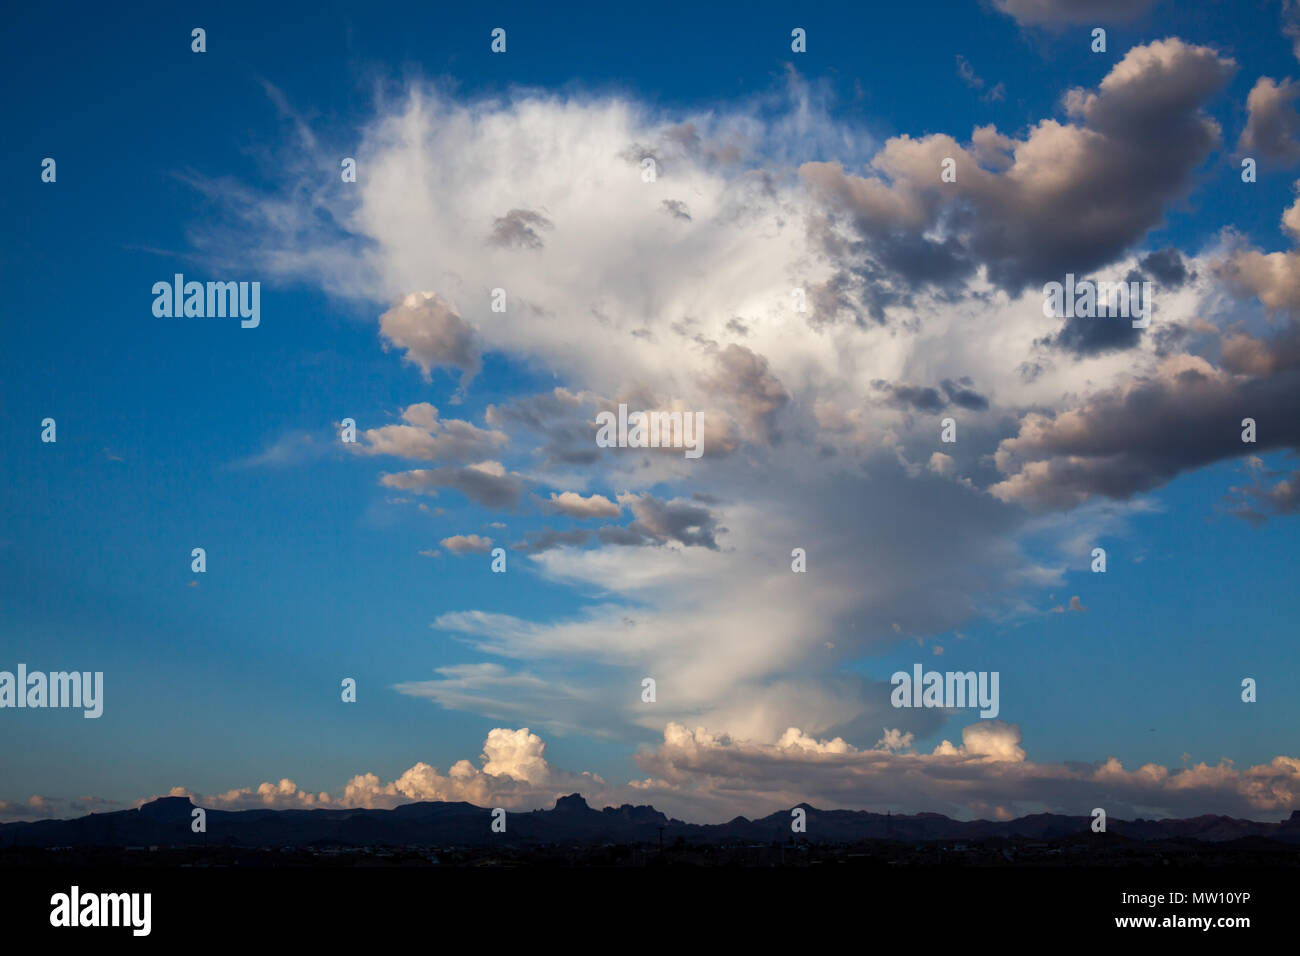 White Fluffy Clouds over Mojave Desert - Stock Image